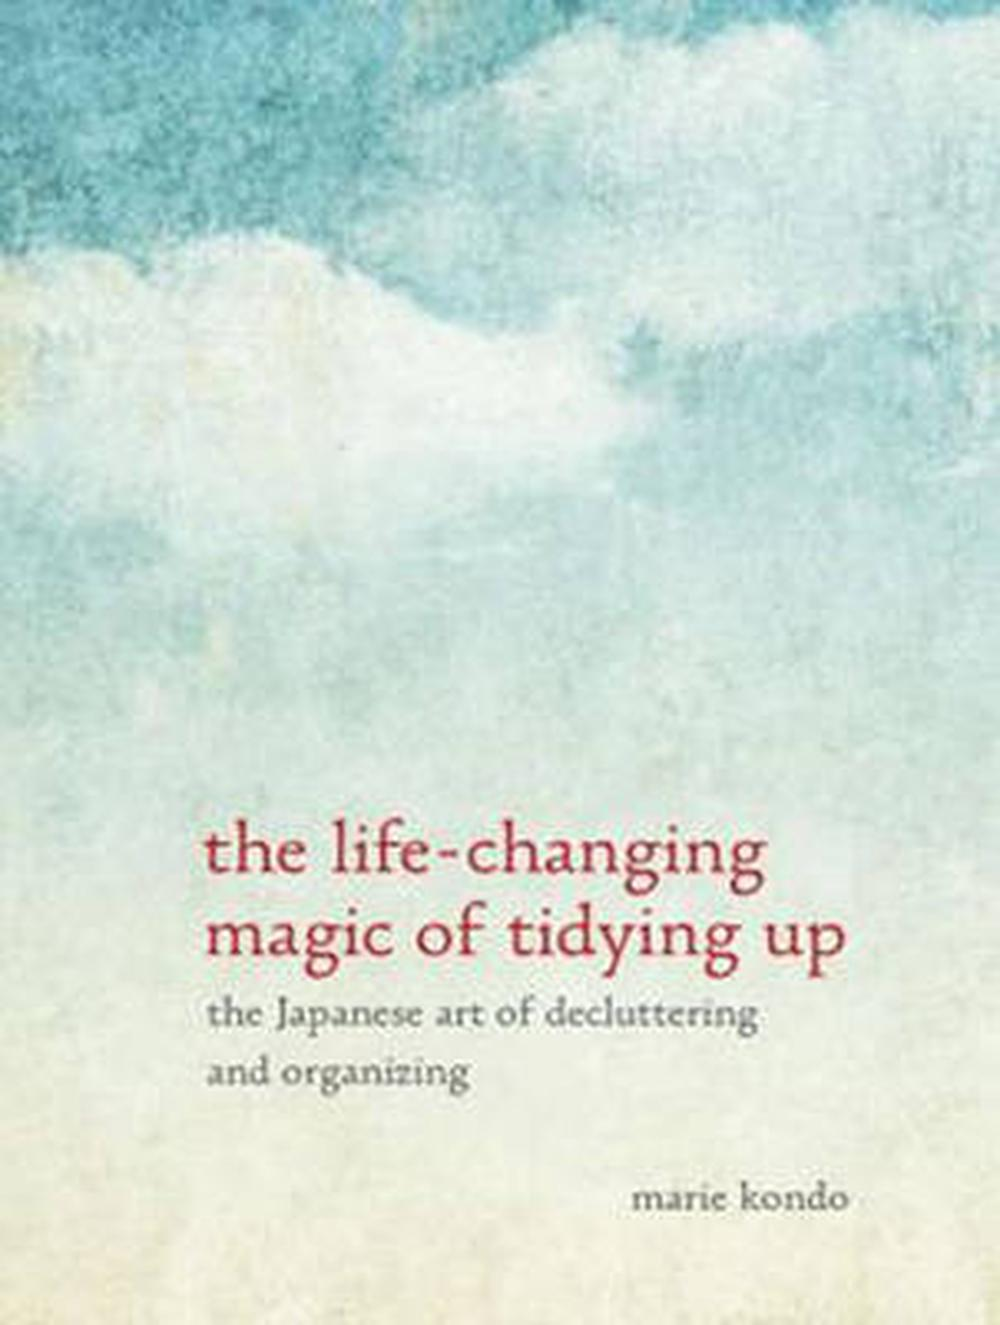 The Life Changing Magic Of Tidying The Life Changing Magic Of Tidying Up The Japanese Art Of Decluttering And Organizing